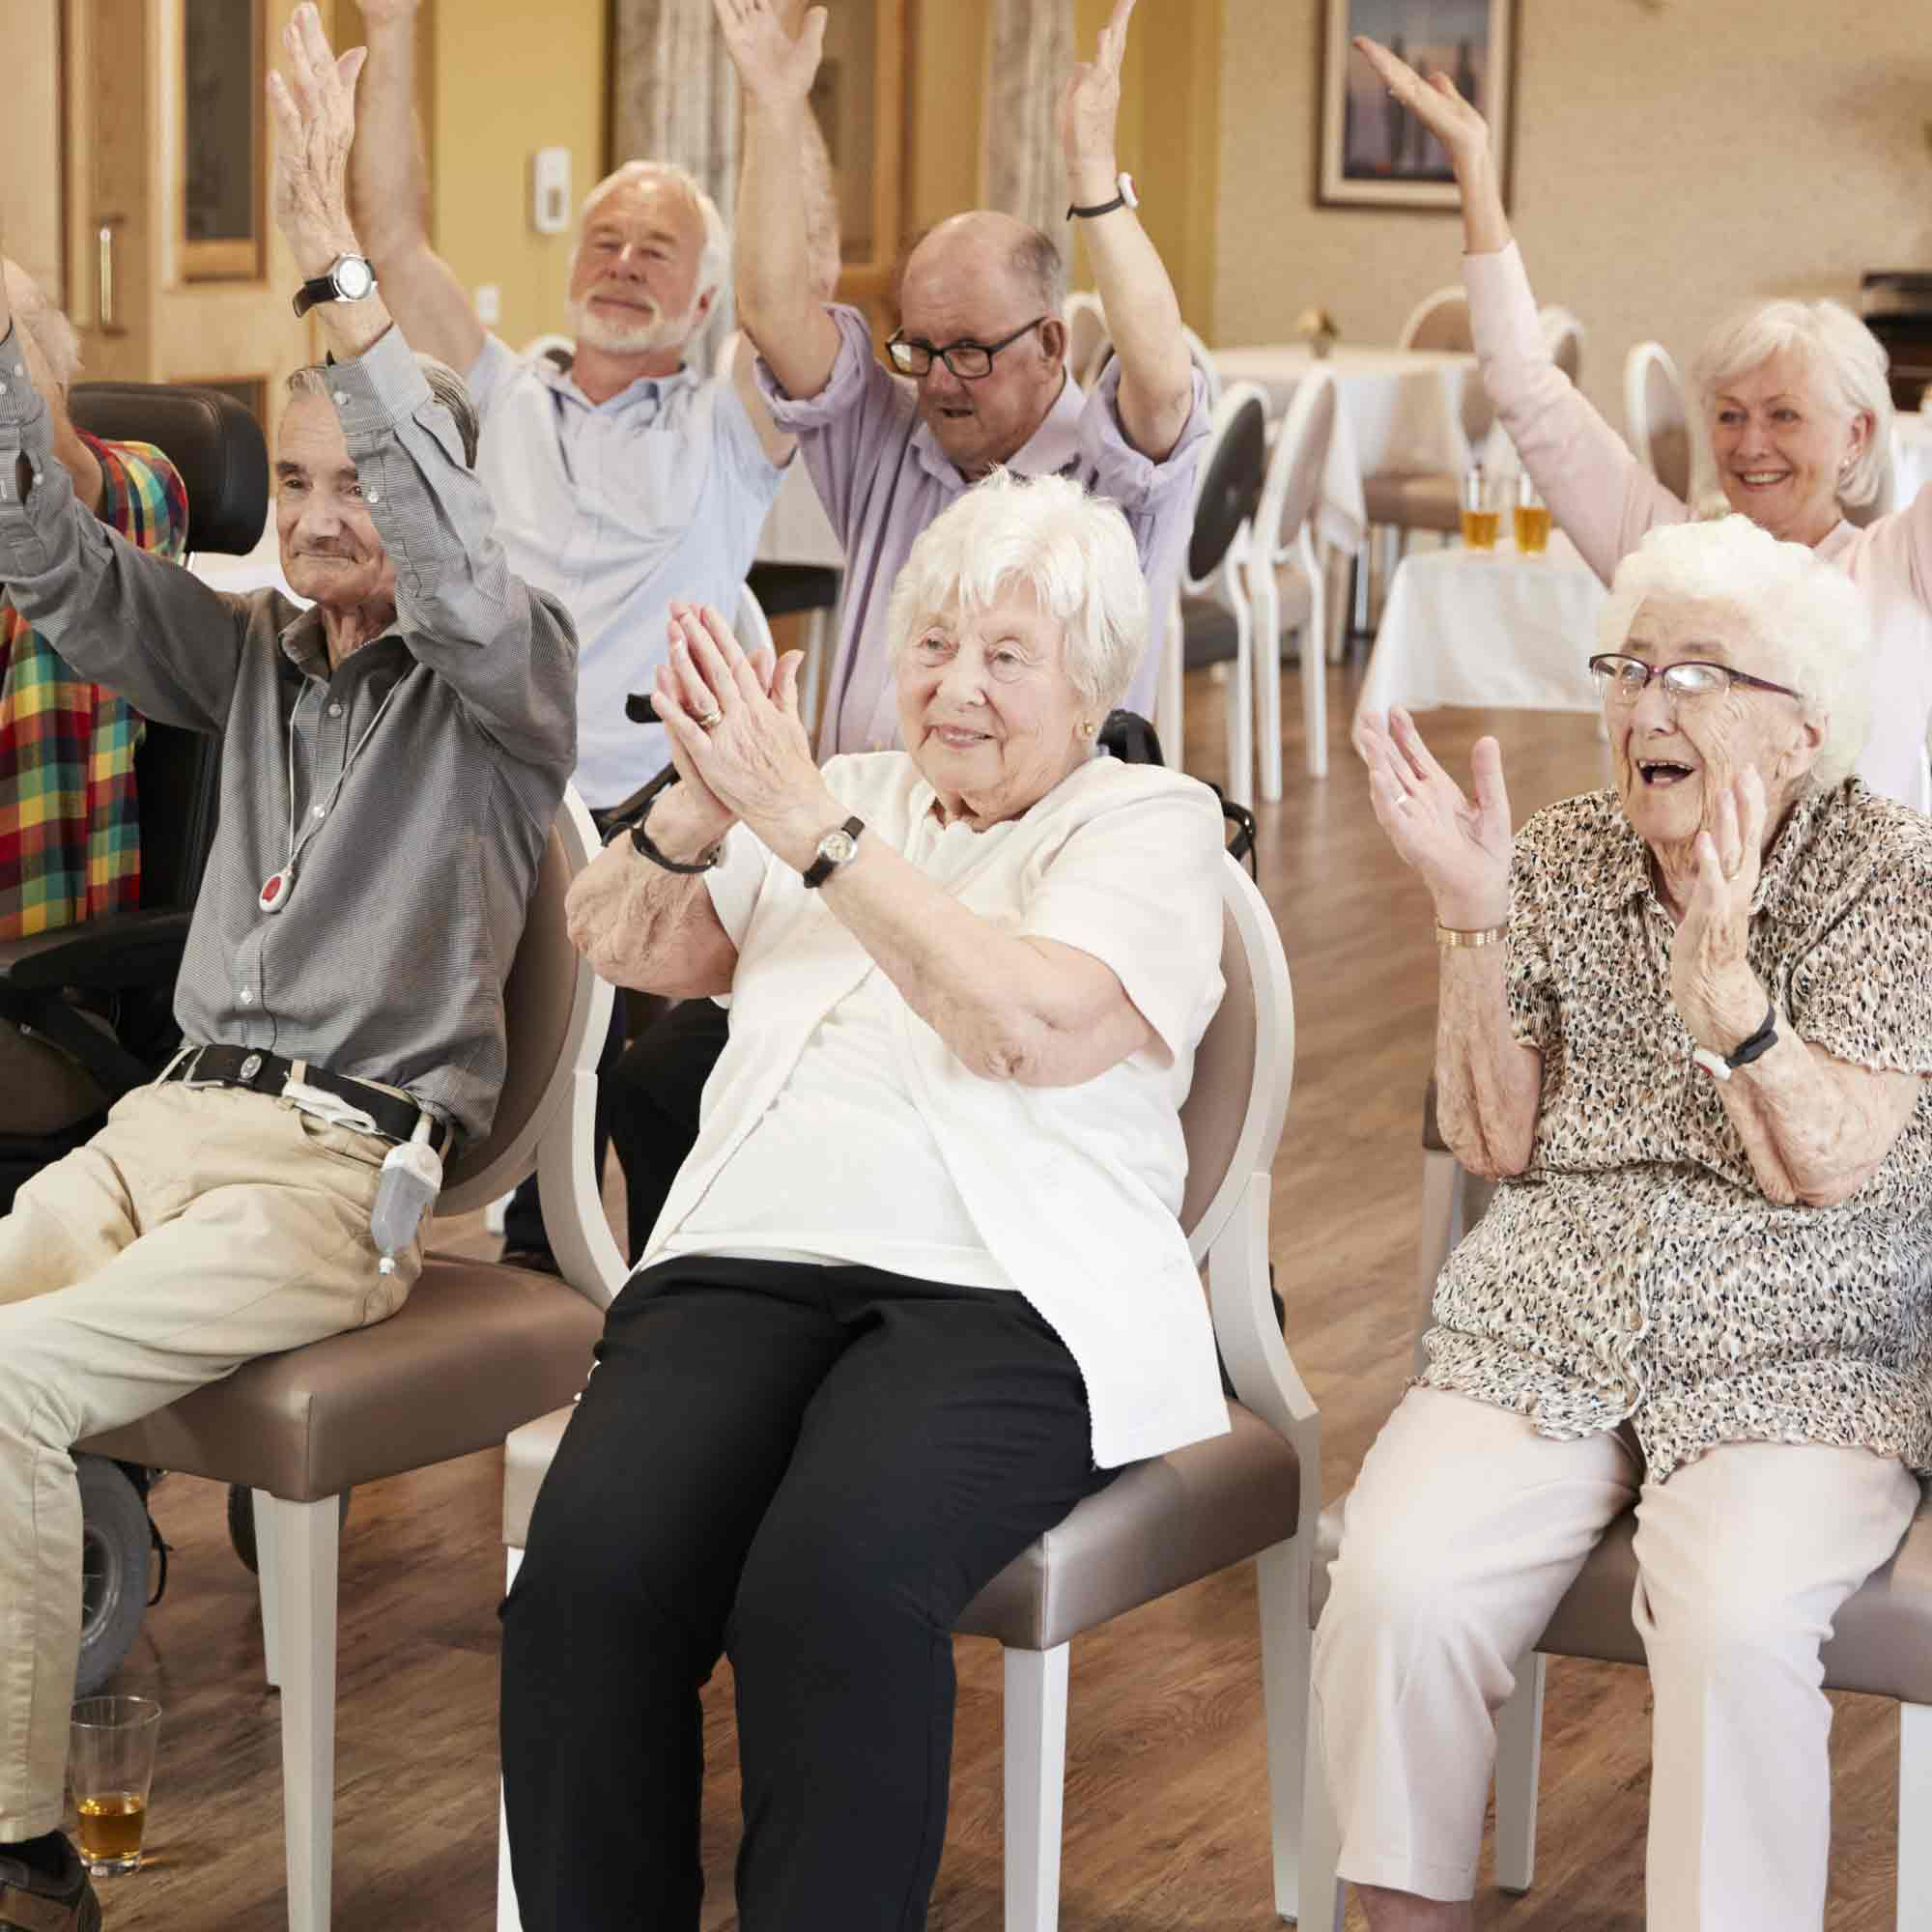 Senior citizens sitting, clapping and holding their hands in the air in a large room.